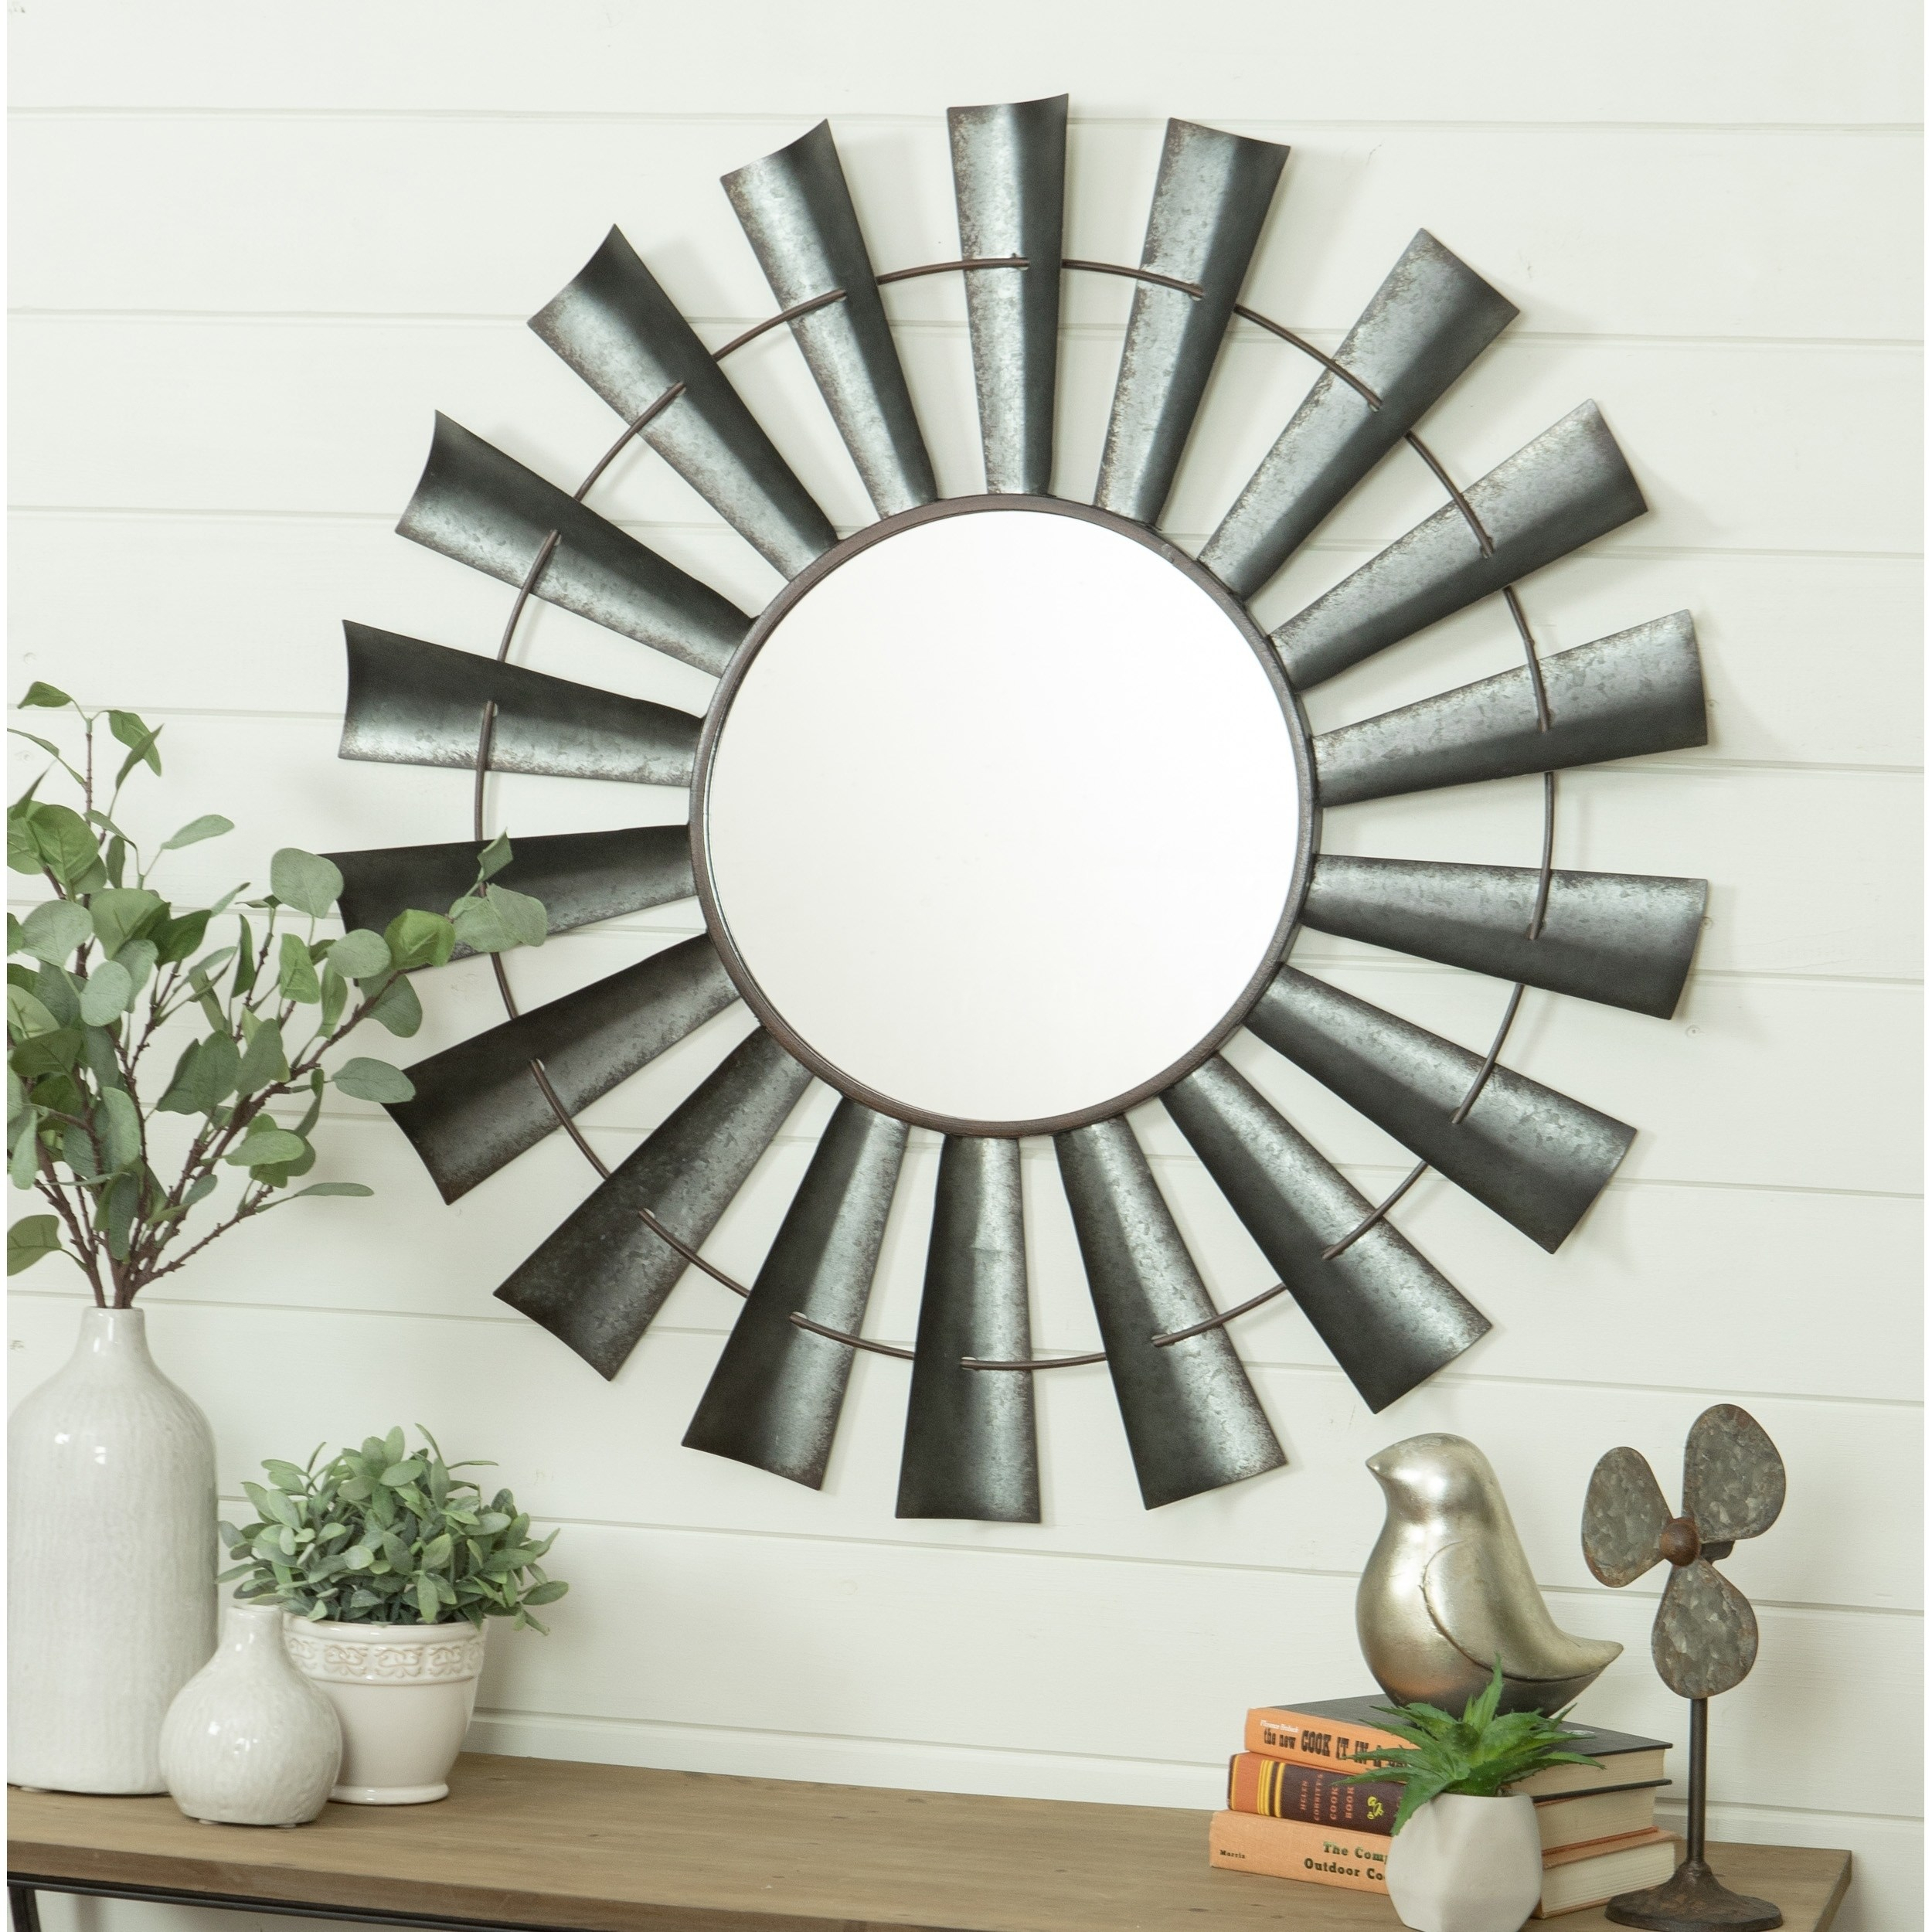 Bloomfield Windmill Wall Mirror – Grey – N/a, Aspire In Perillo Burst Wood Accent Mirrors (Image 1 of 20)